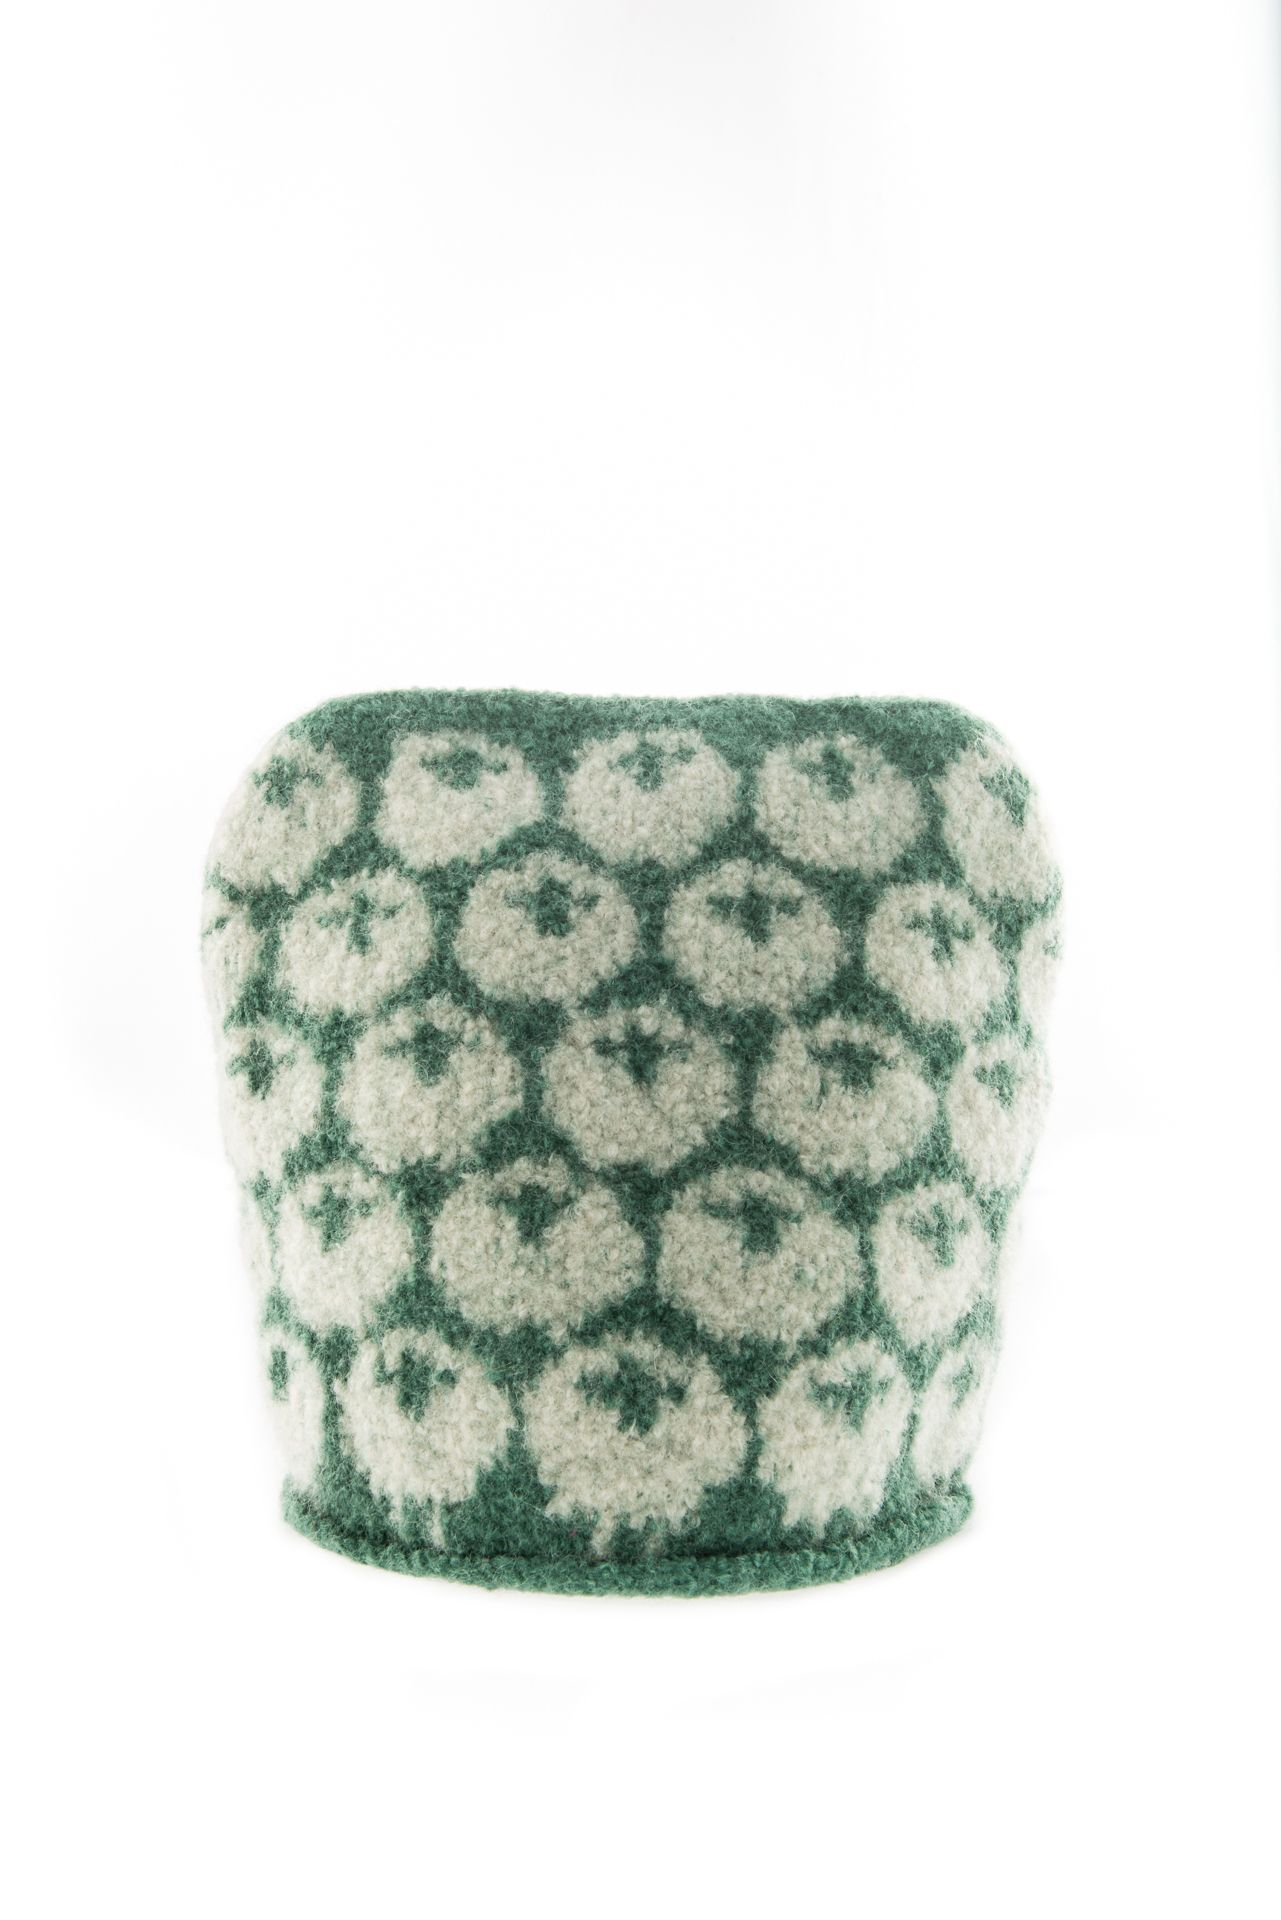 Felted sheep tea cosy in cream and green